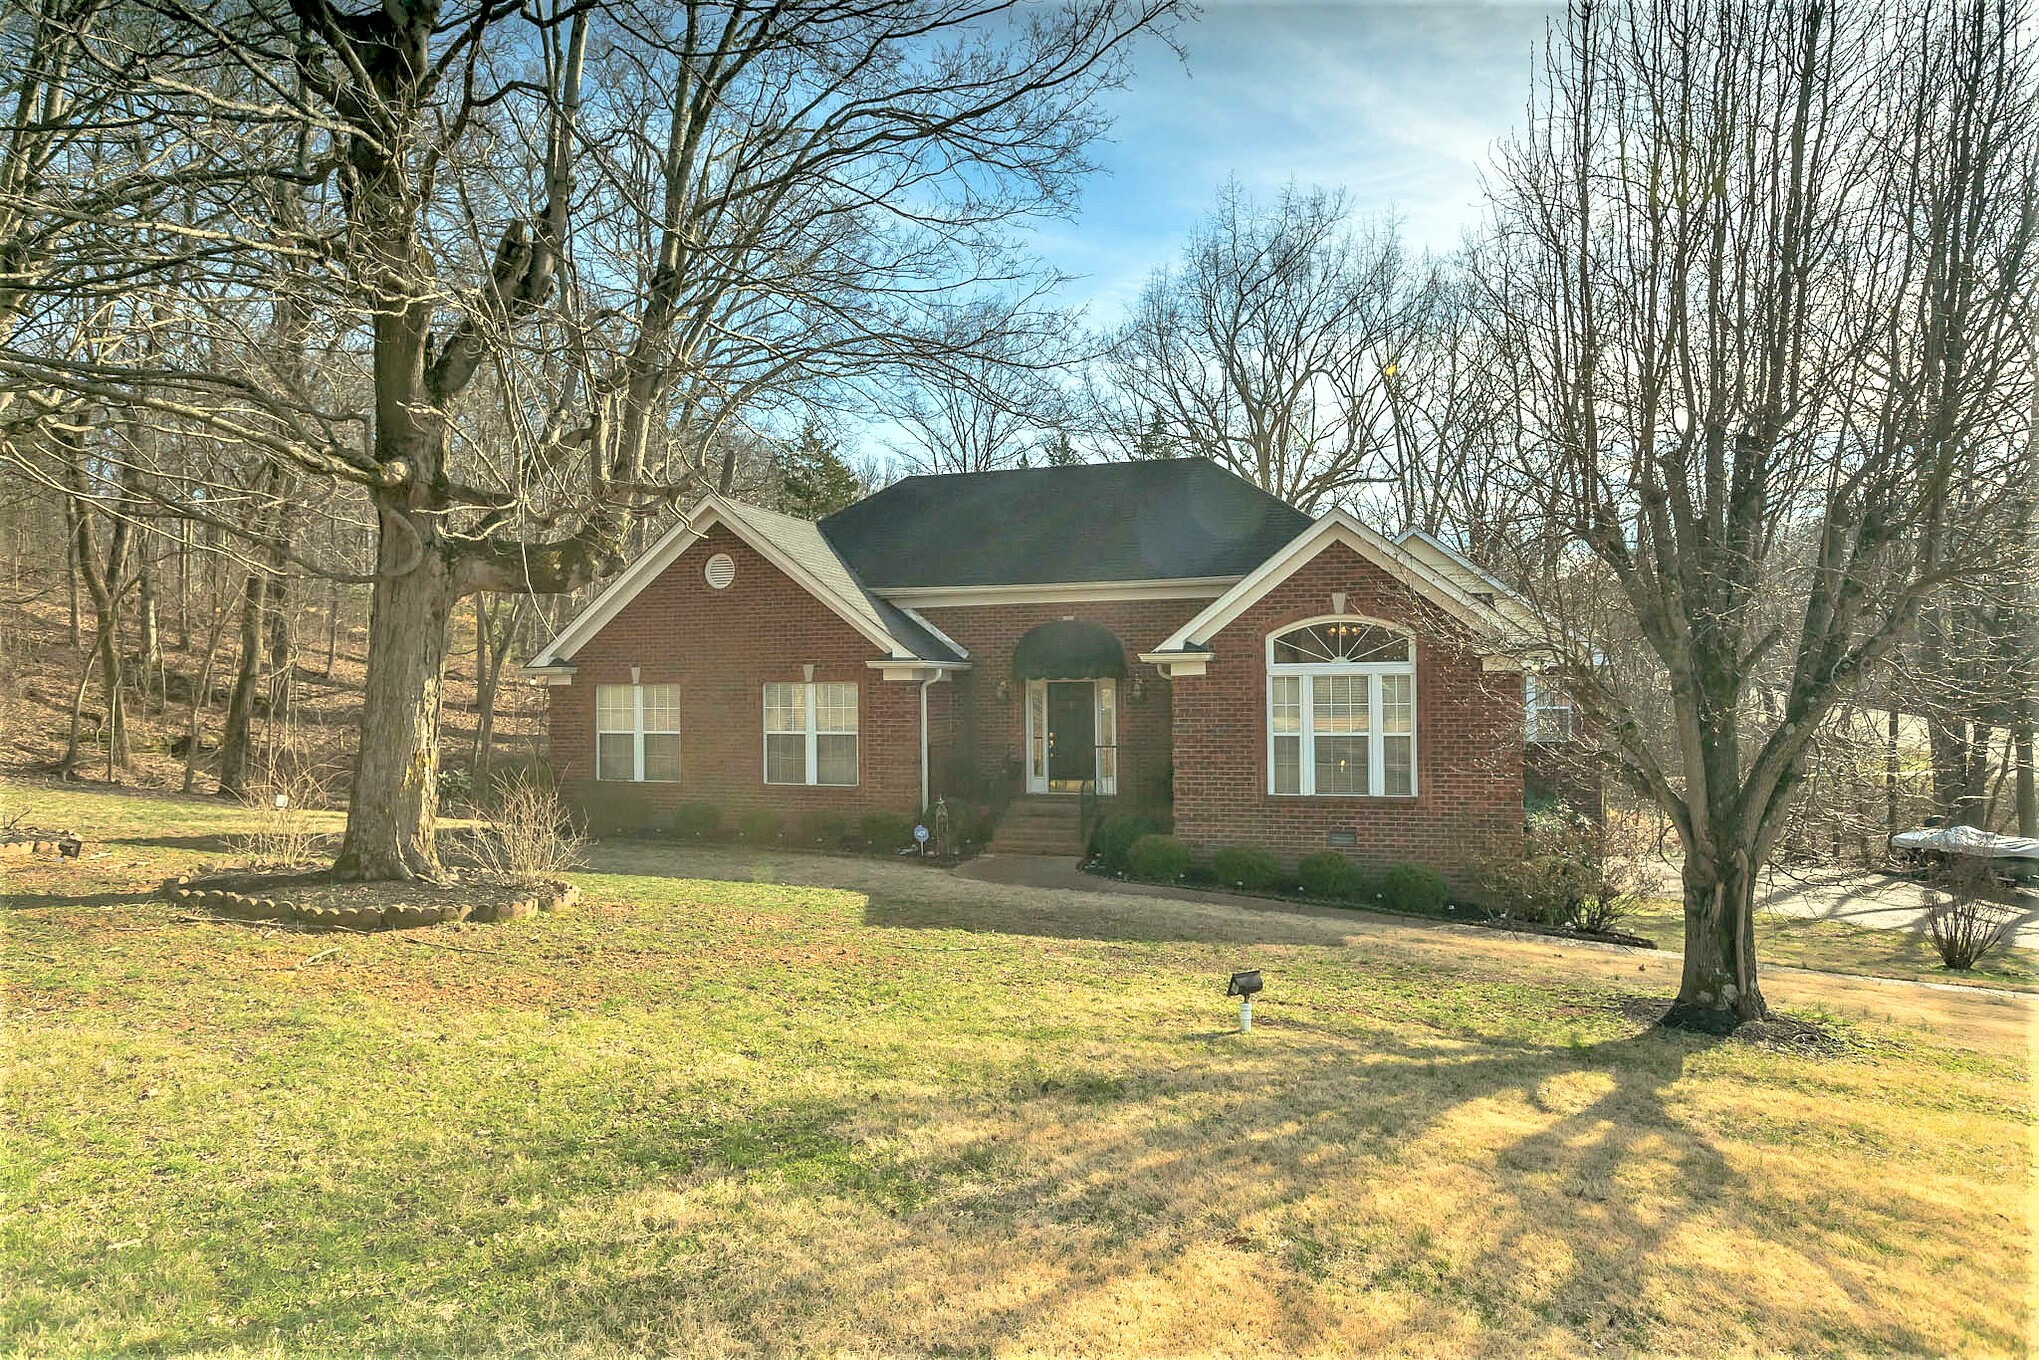 1000 Cherry Springs Dr, Cottontown, TN 37048 - Cottontown, TN real estate listing